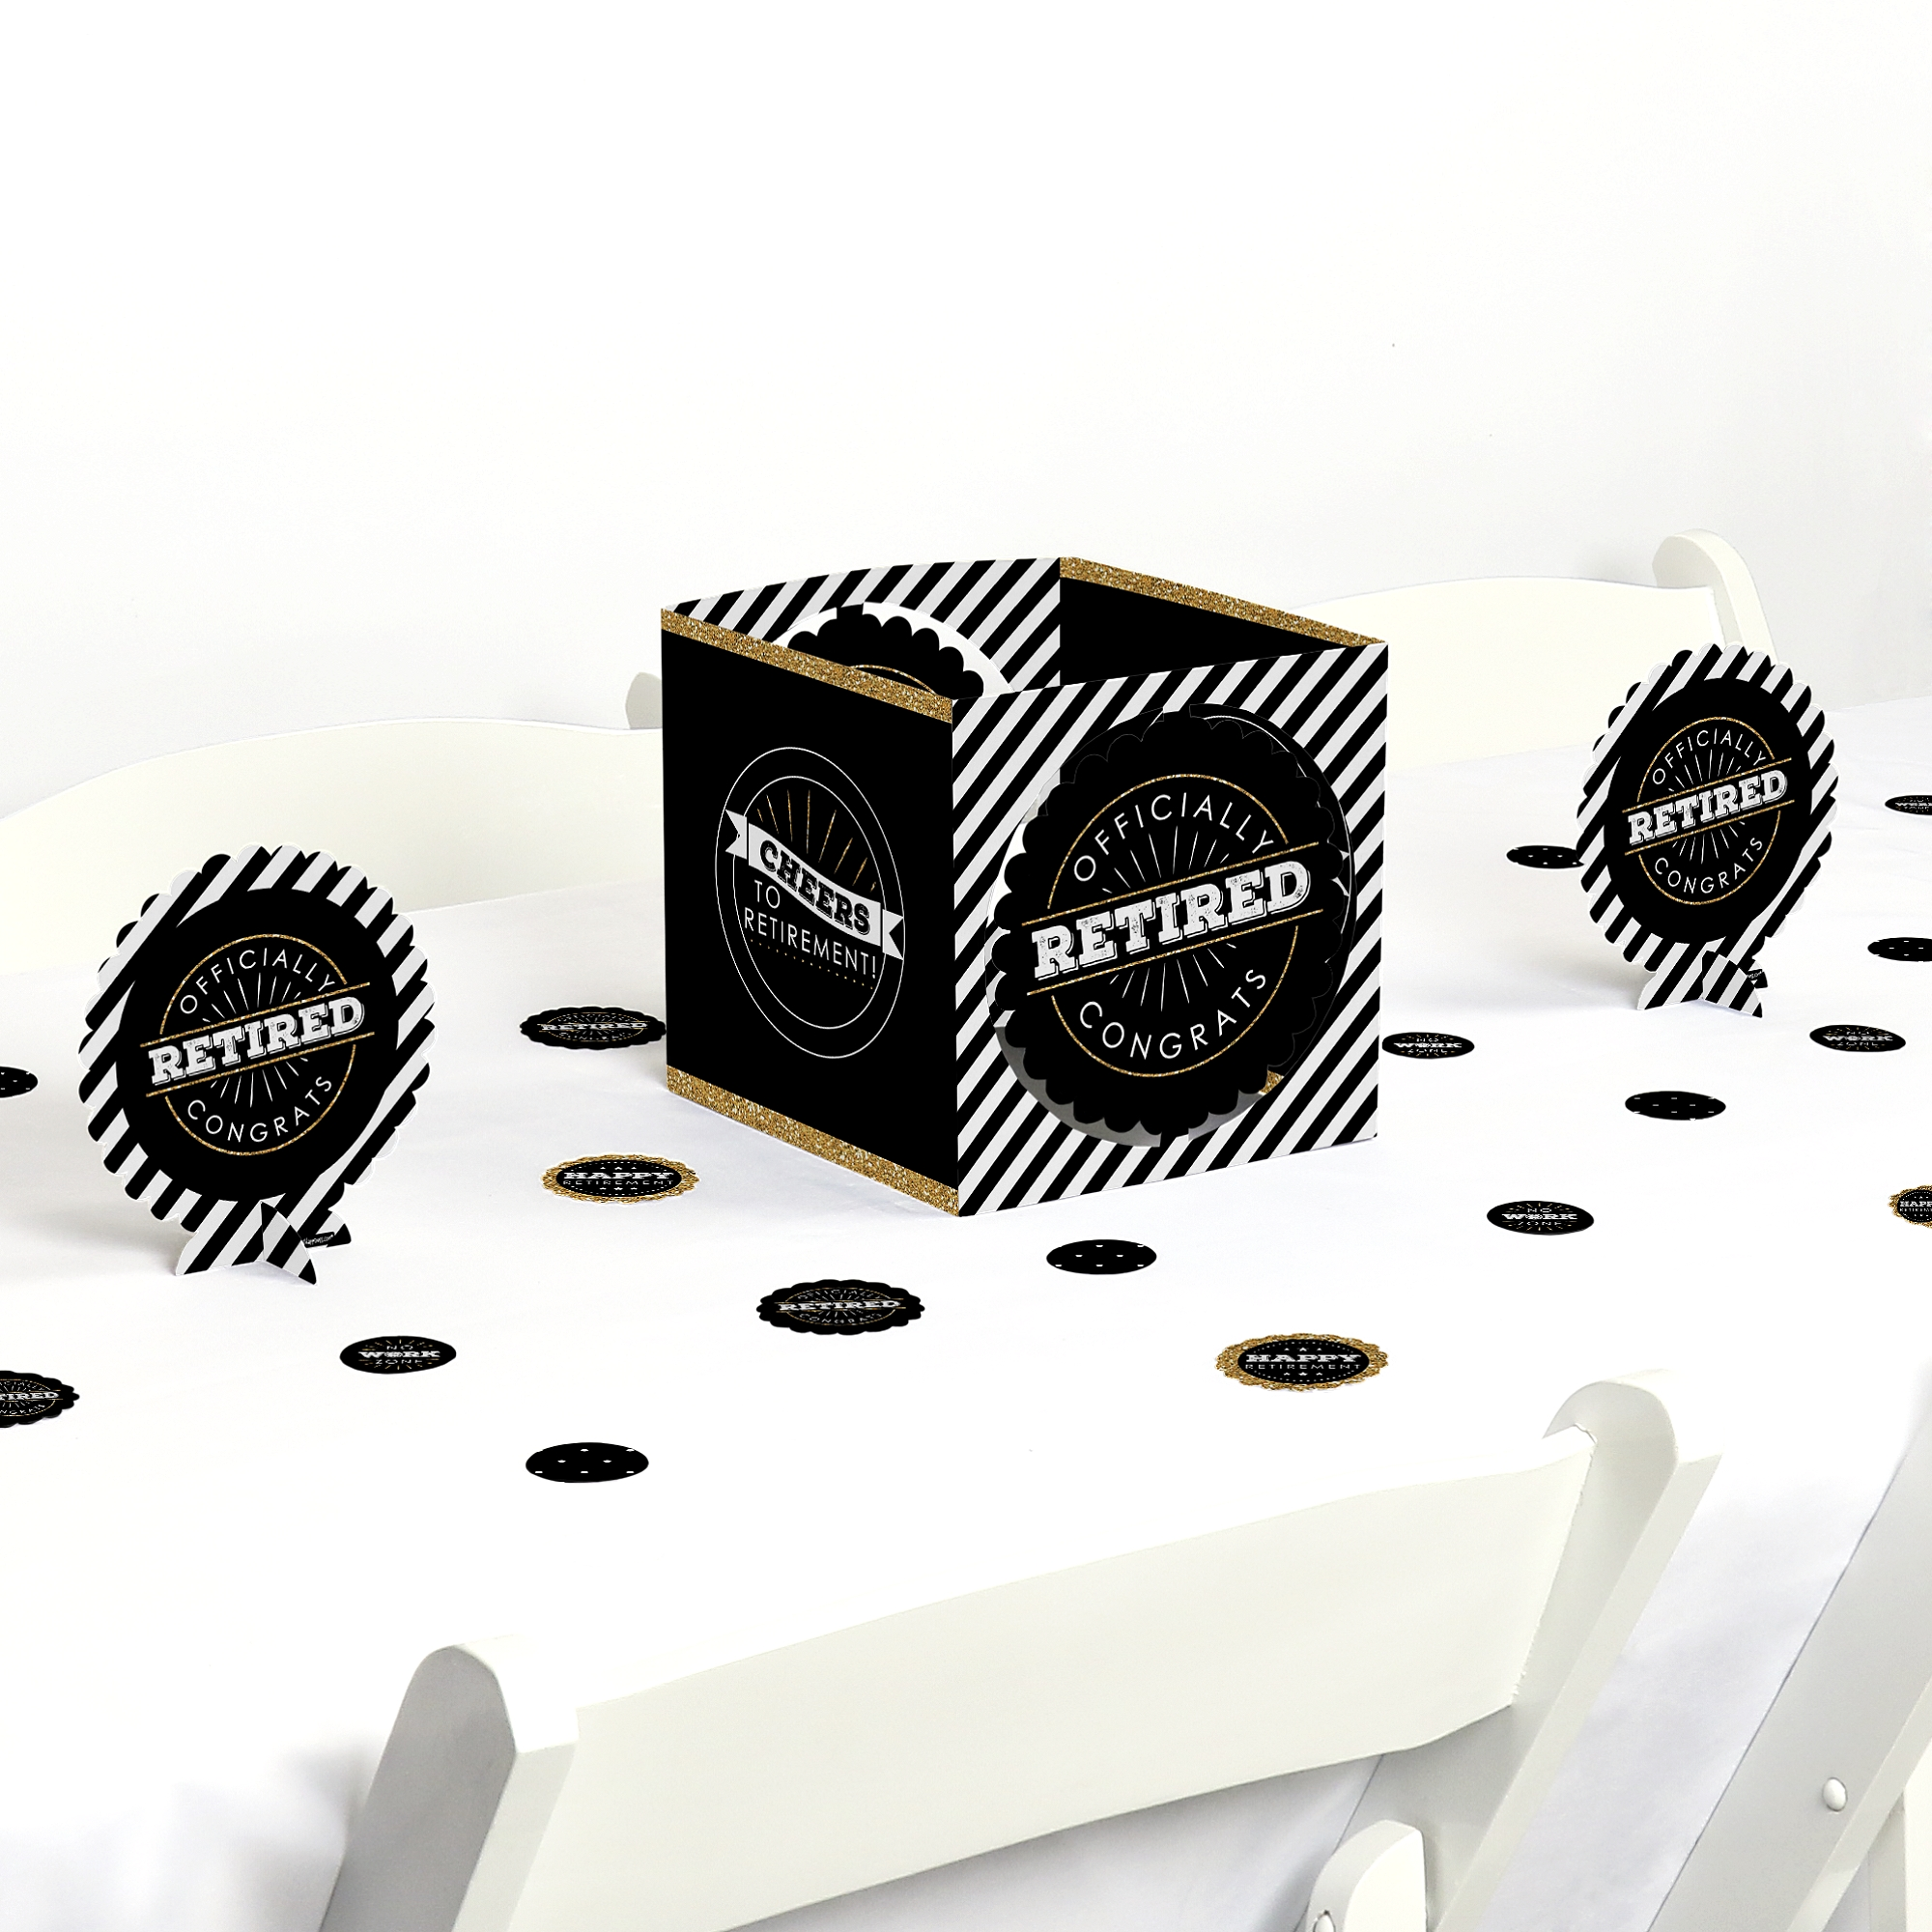 Happy Retirement - Retirement Party Centerpiece & Table Decoration Kit